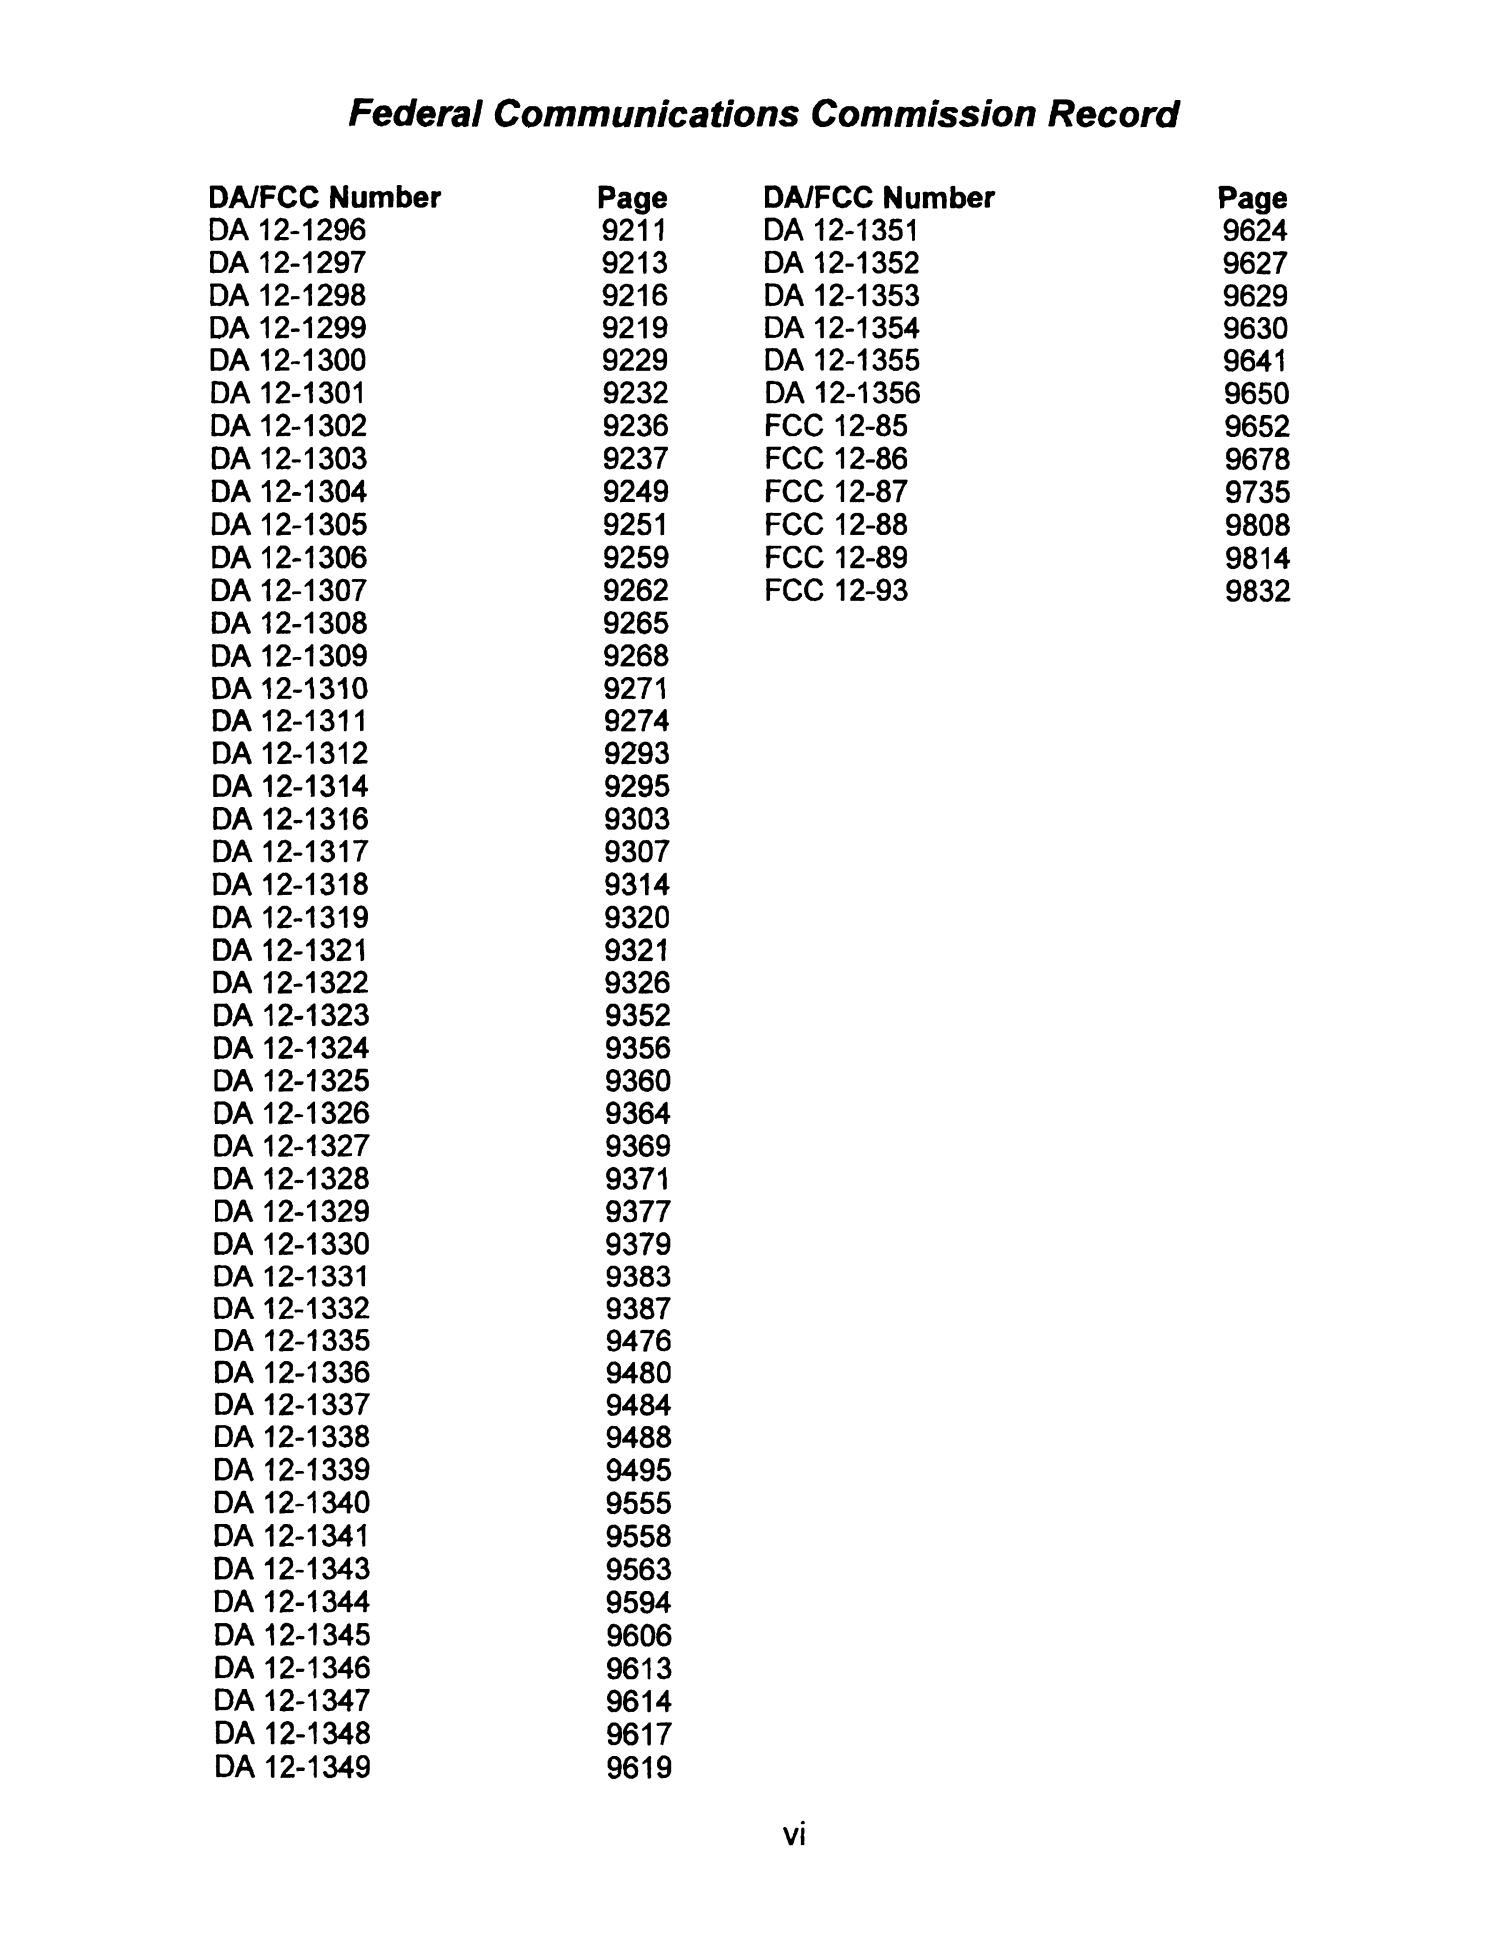 FCC Record, Volume 27, No. 11, Pages 8850 to 9847, July 30 - August 17, 2012                                                                                                      VI